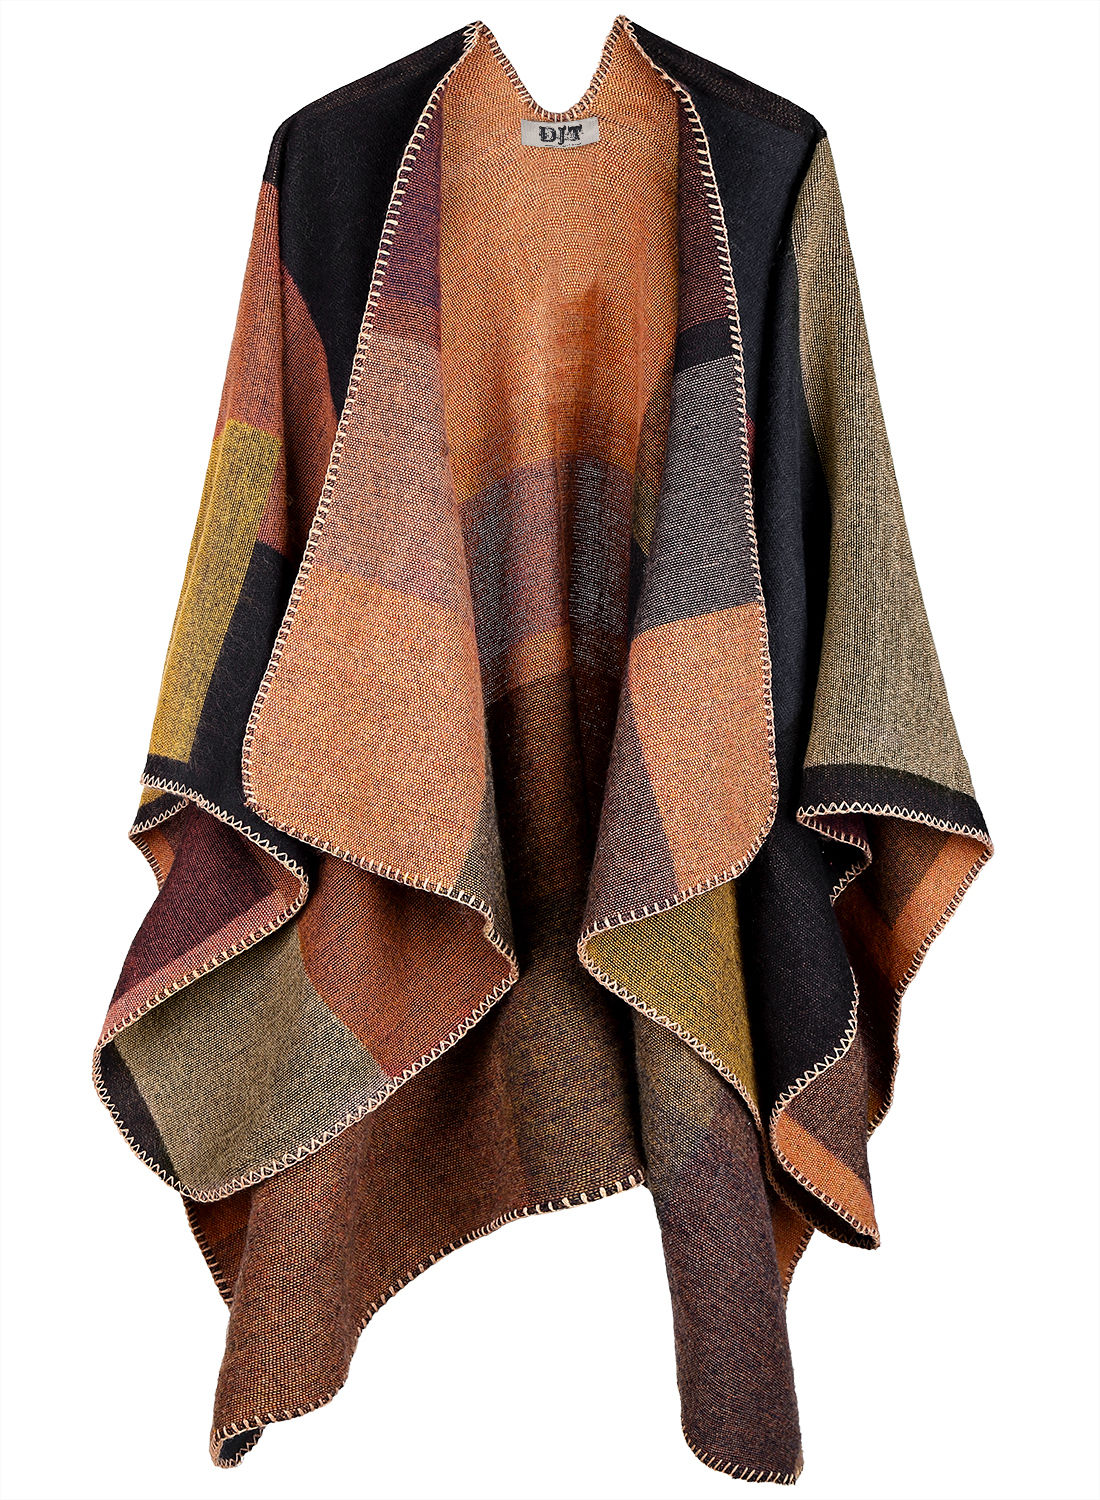 Women's Apparel, Sweaters, Ponchos & Capes at shopnow-ahoqsxpv.ga, offering the modern energy, style and personalized service of Saks Fifth Avenue stores, in an enhanced, easy-to .